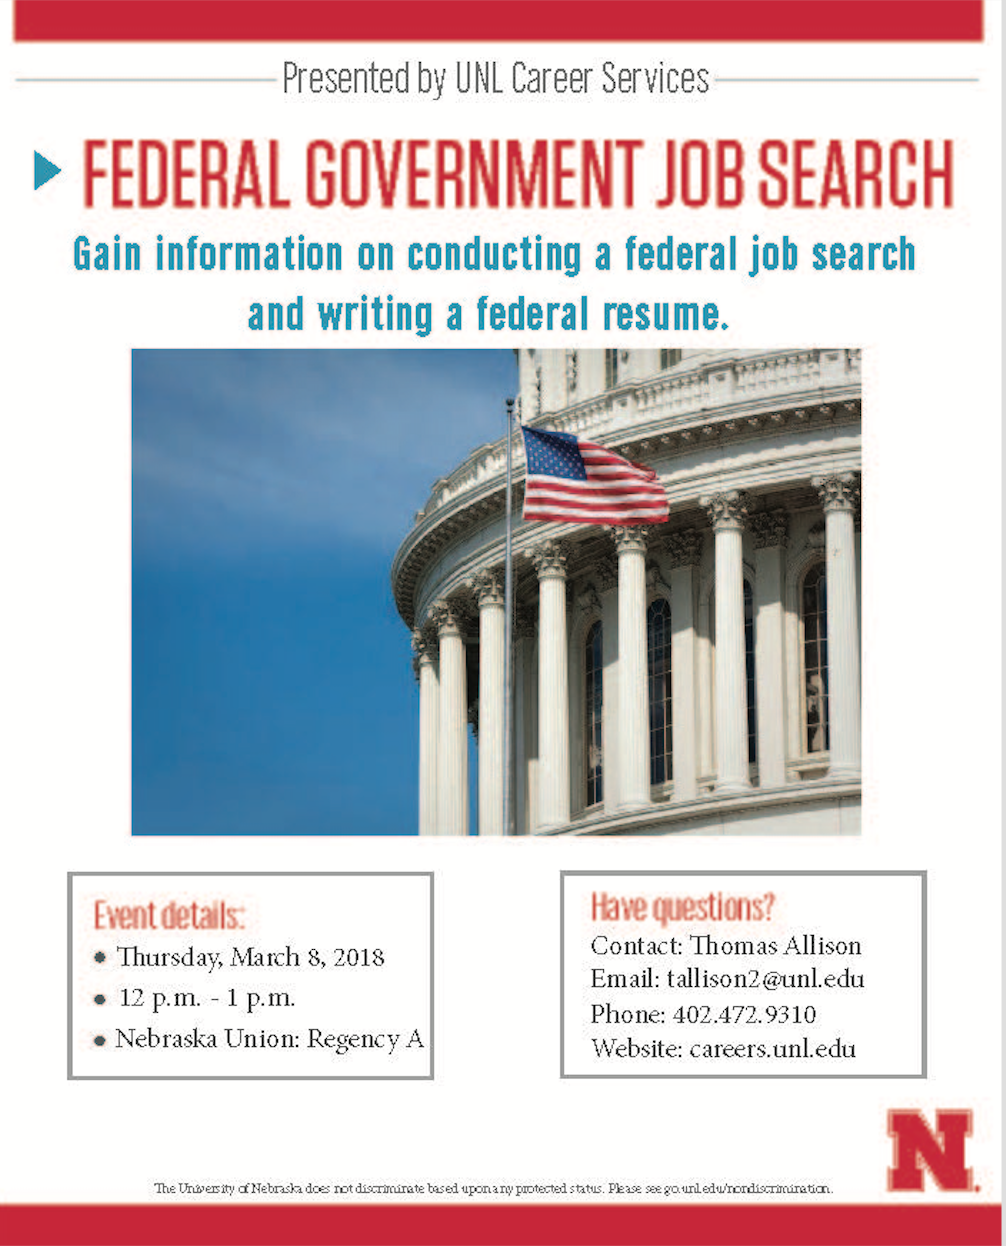 Federal Government Job Search